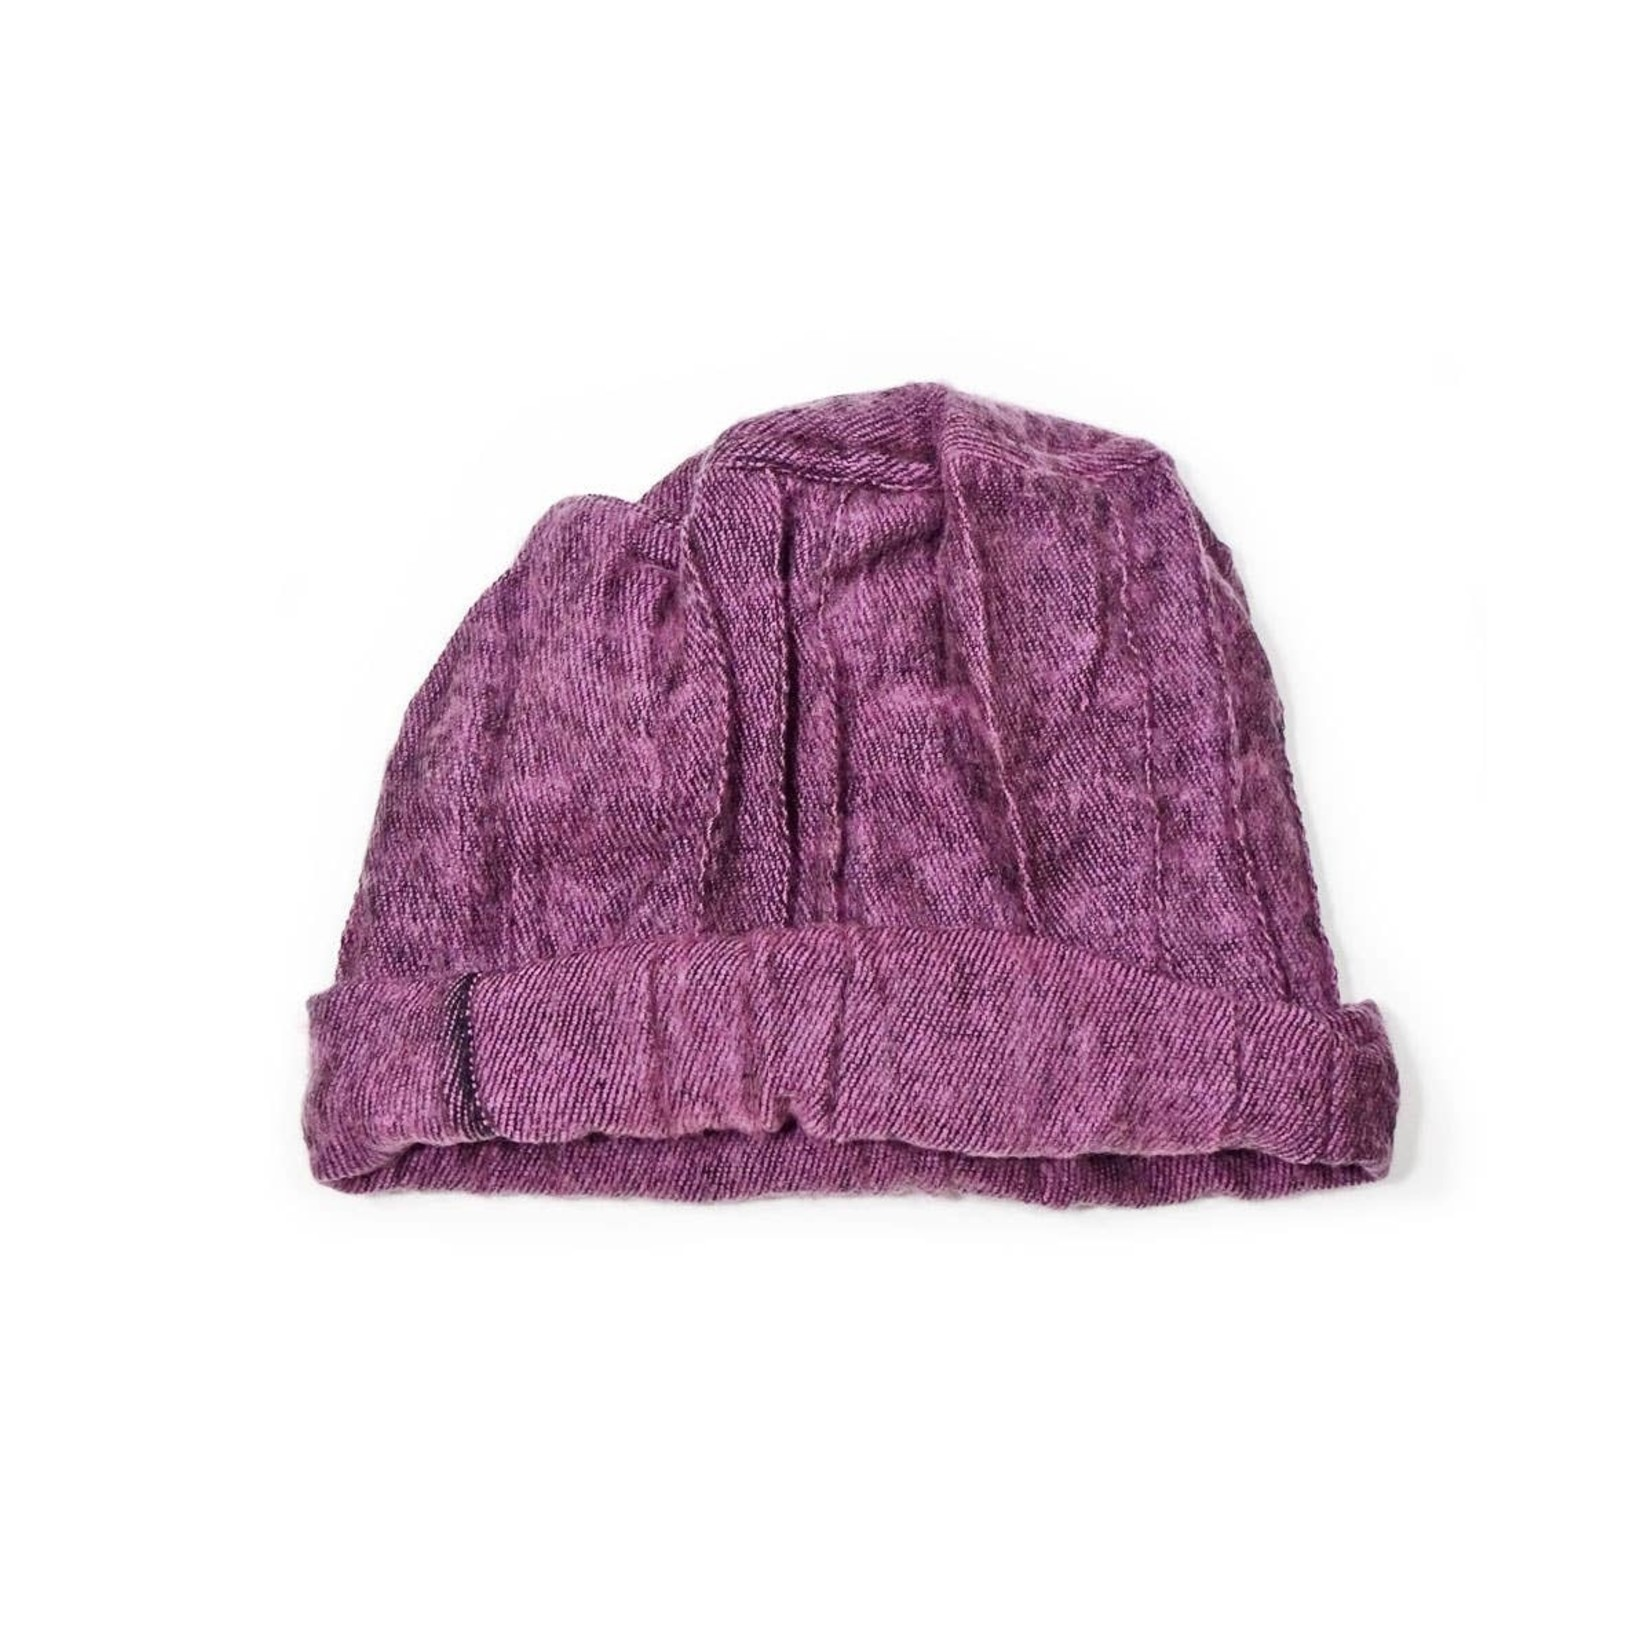 Zig Zag Asian Brushed Woven Pashtun Hat in Lilac